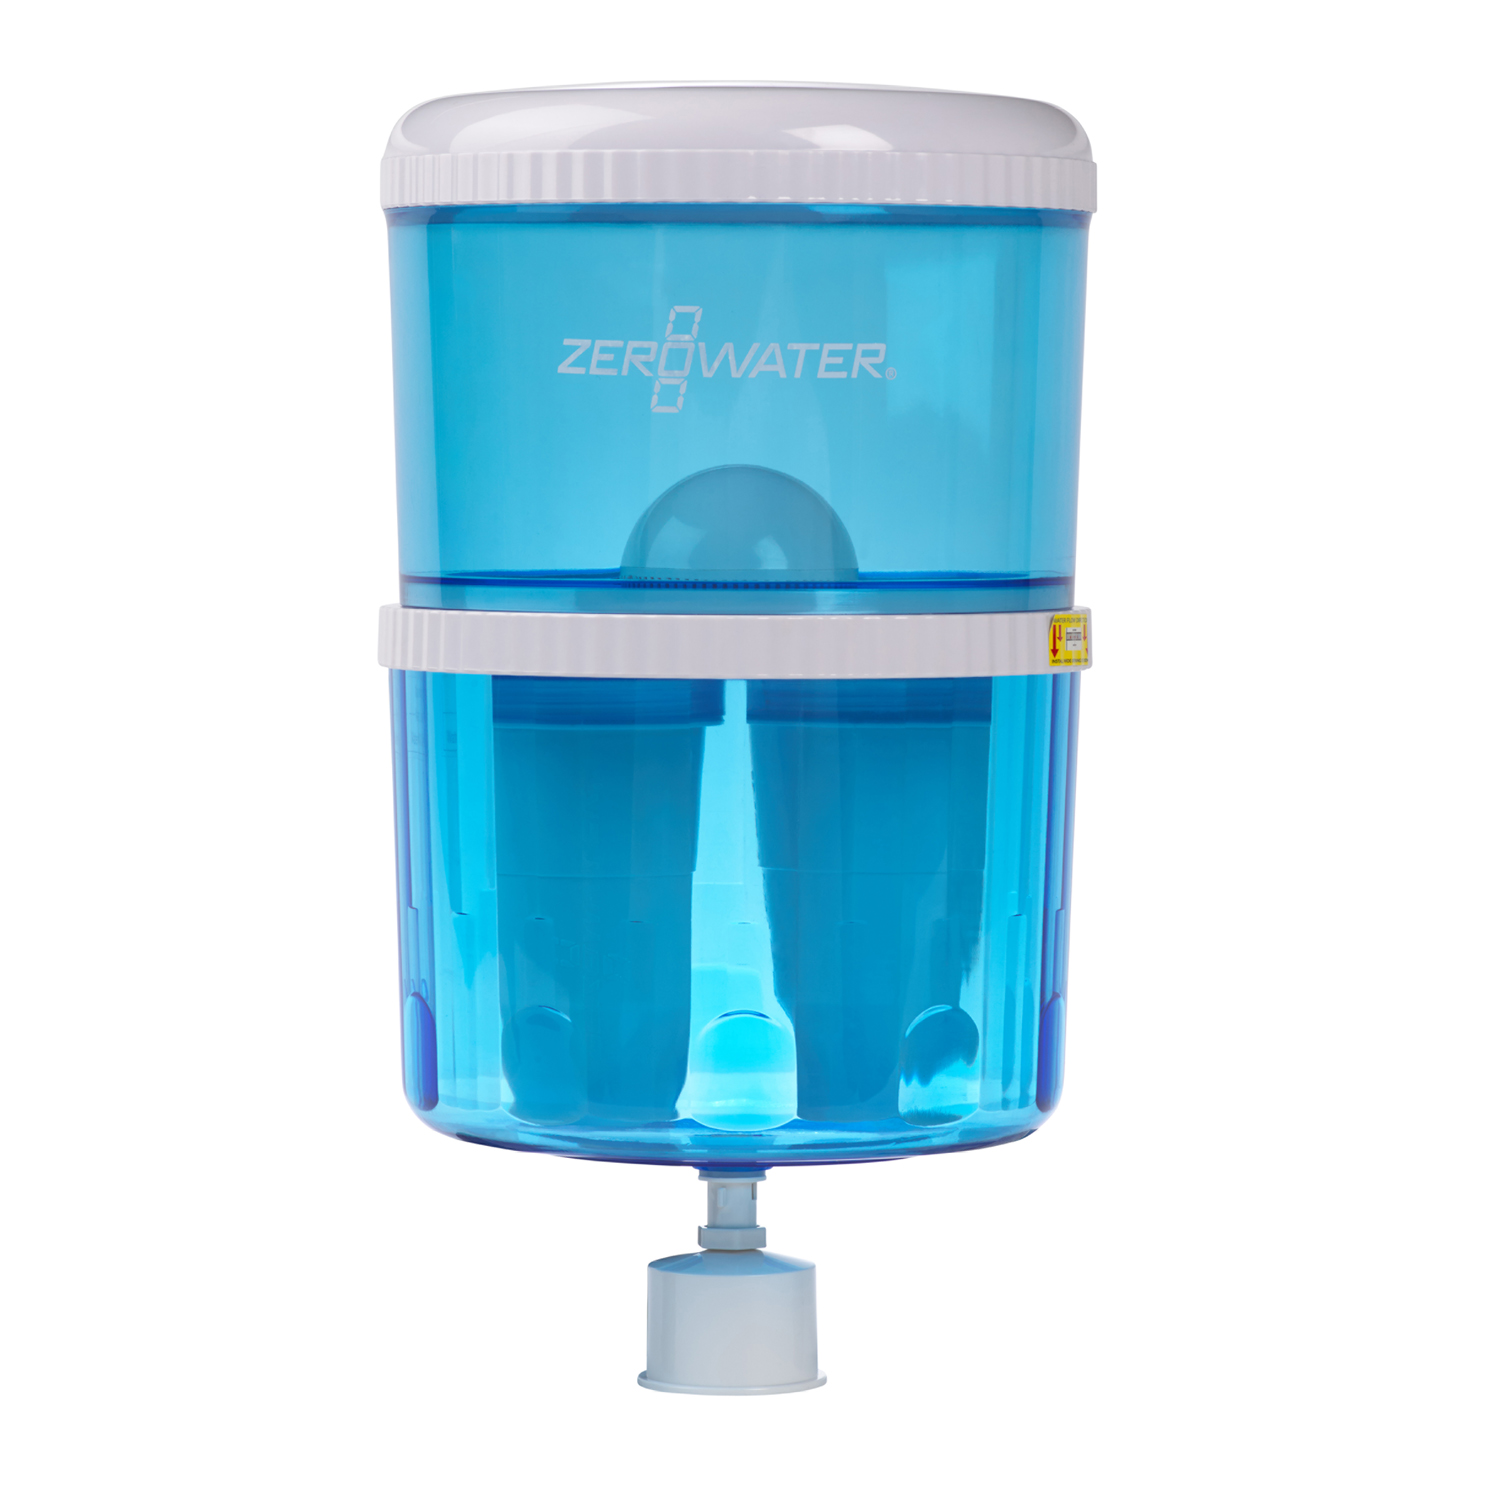 ZeroWater ZJ-003 Water Cooler Filtration System (Water Cooler not included)